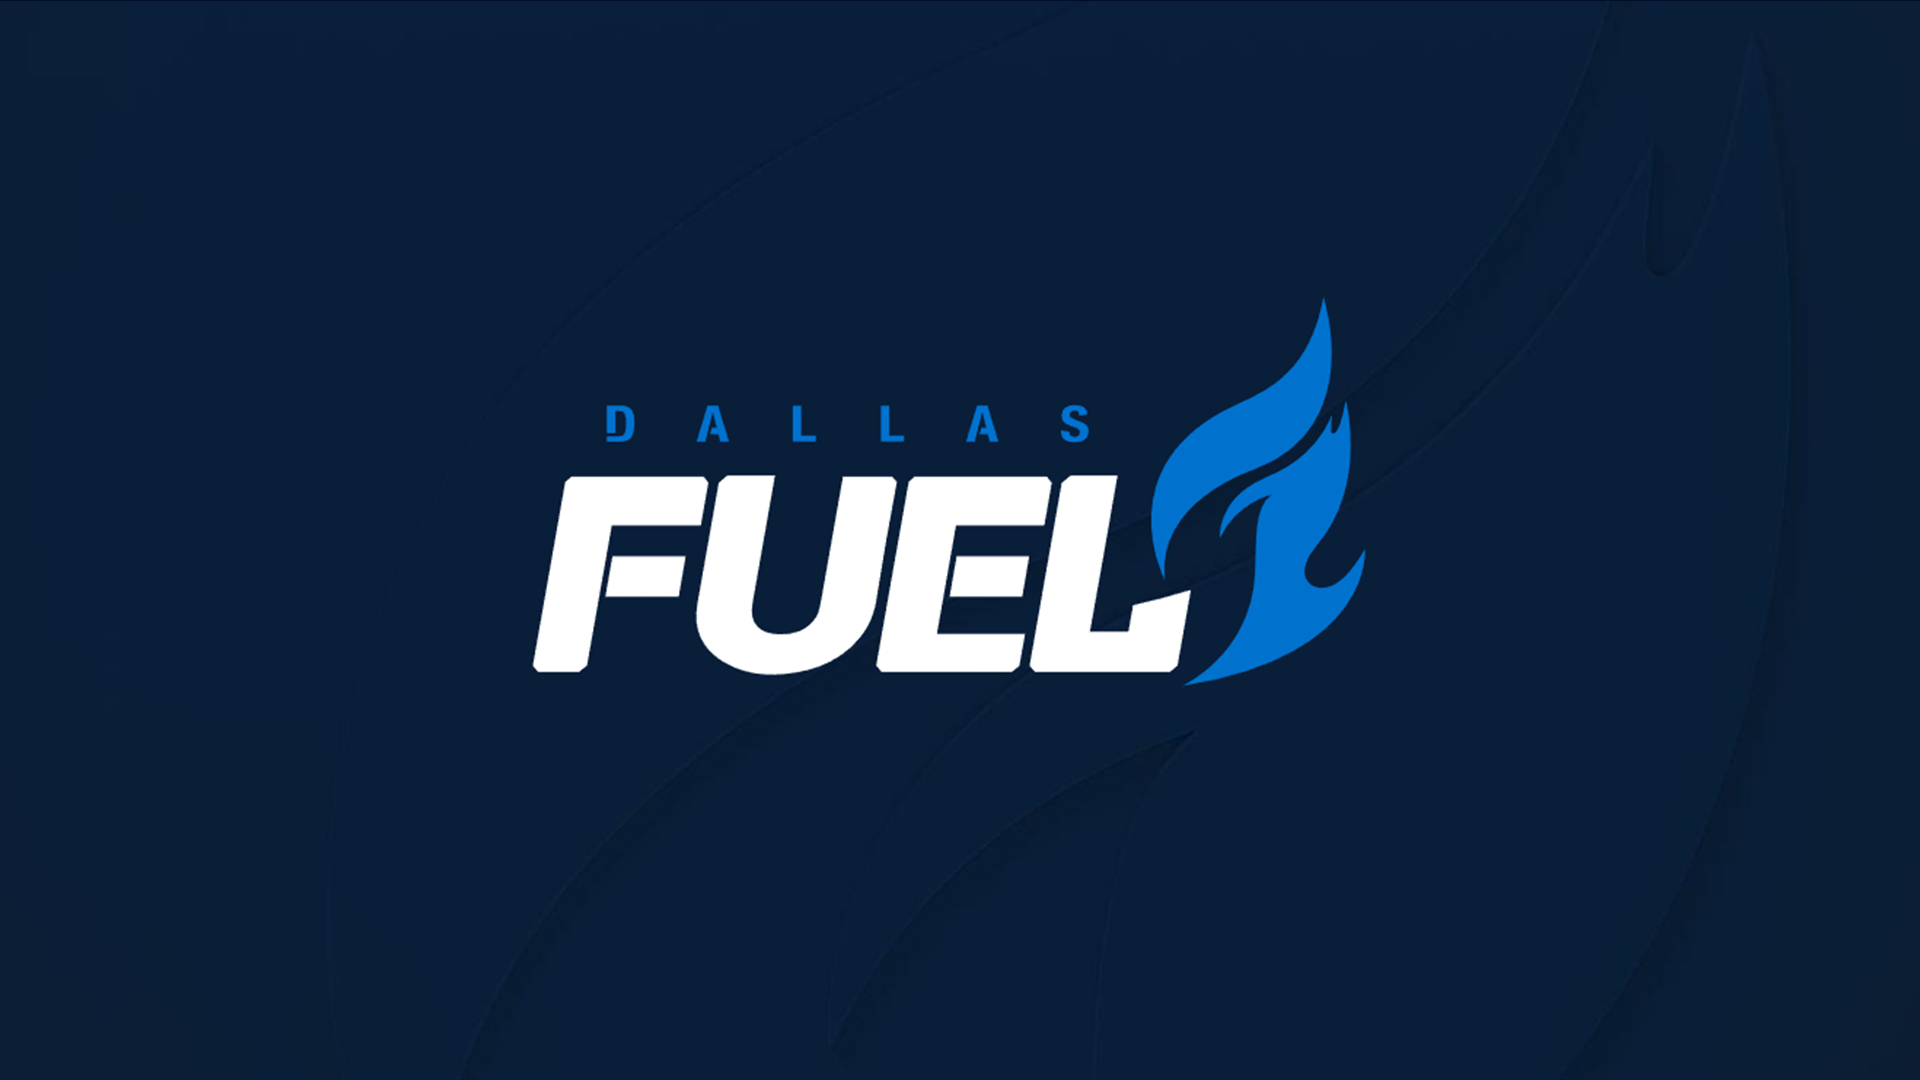 philadelphia fusion vs dallas fuel 3 1 final general discussion